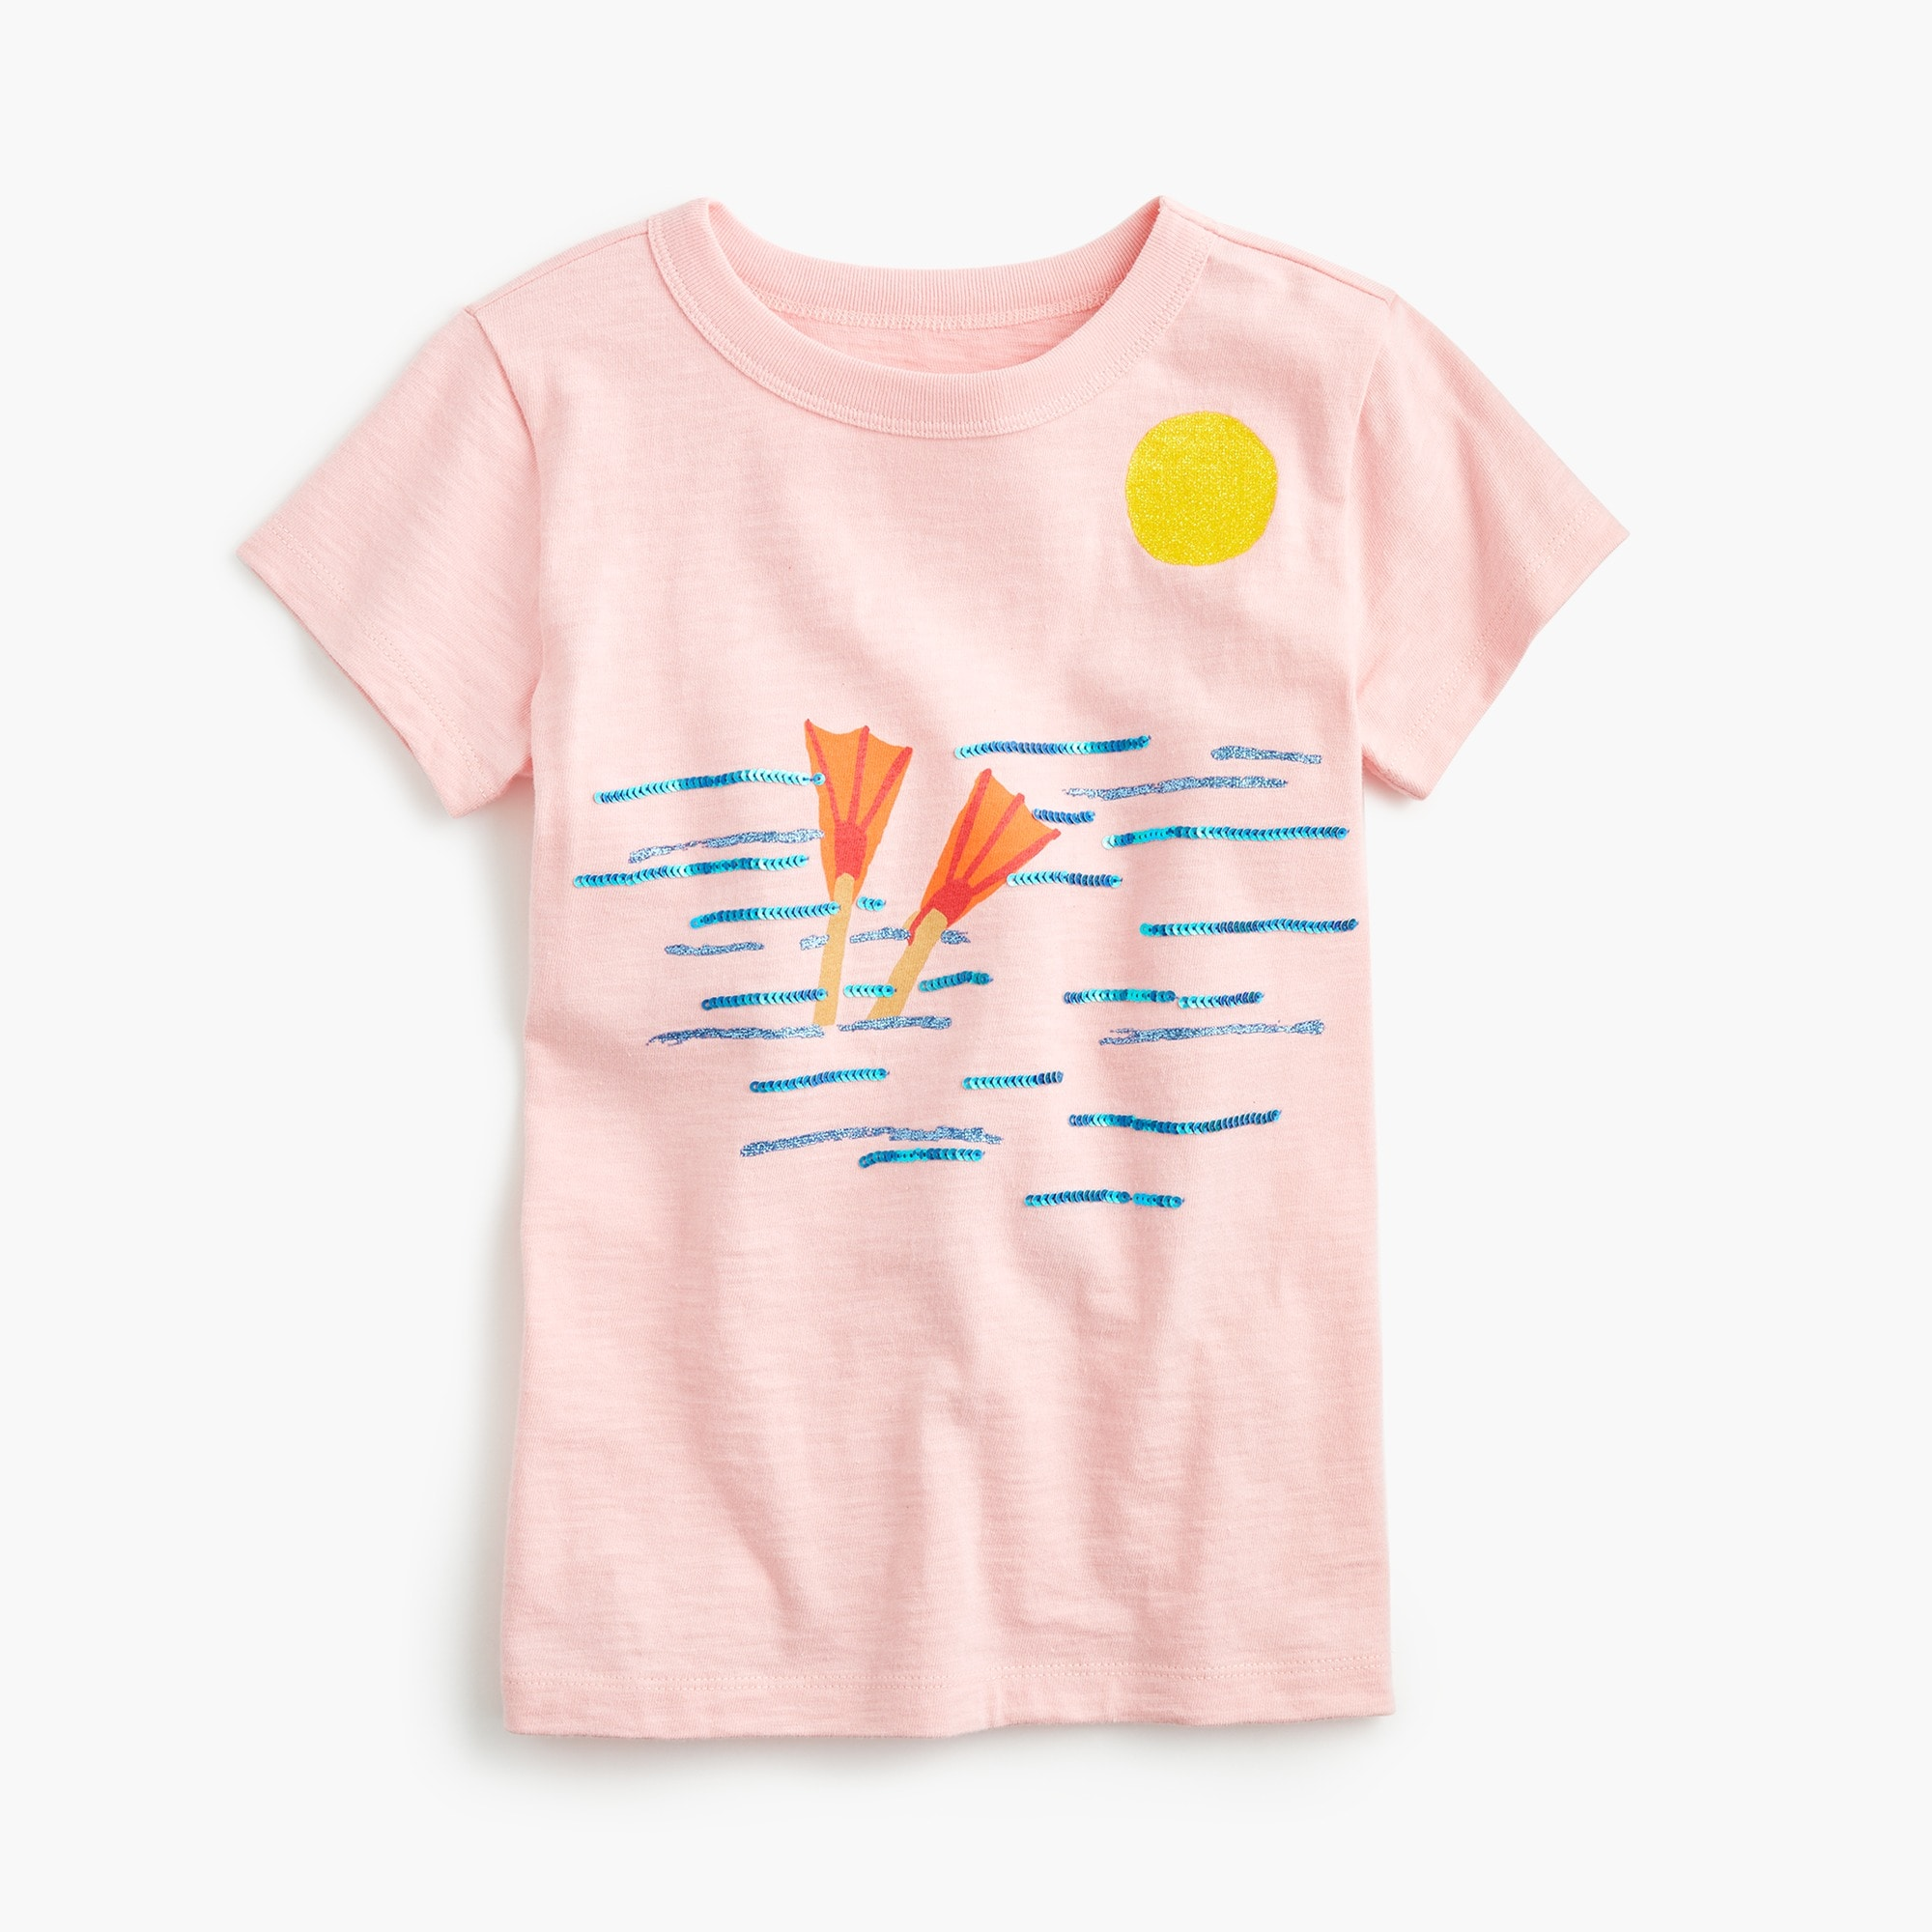 Image 1 for Girls' deep dive T-shirt